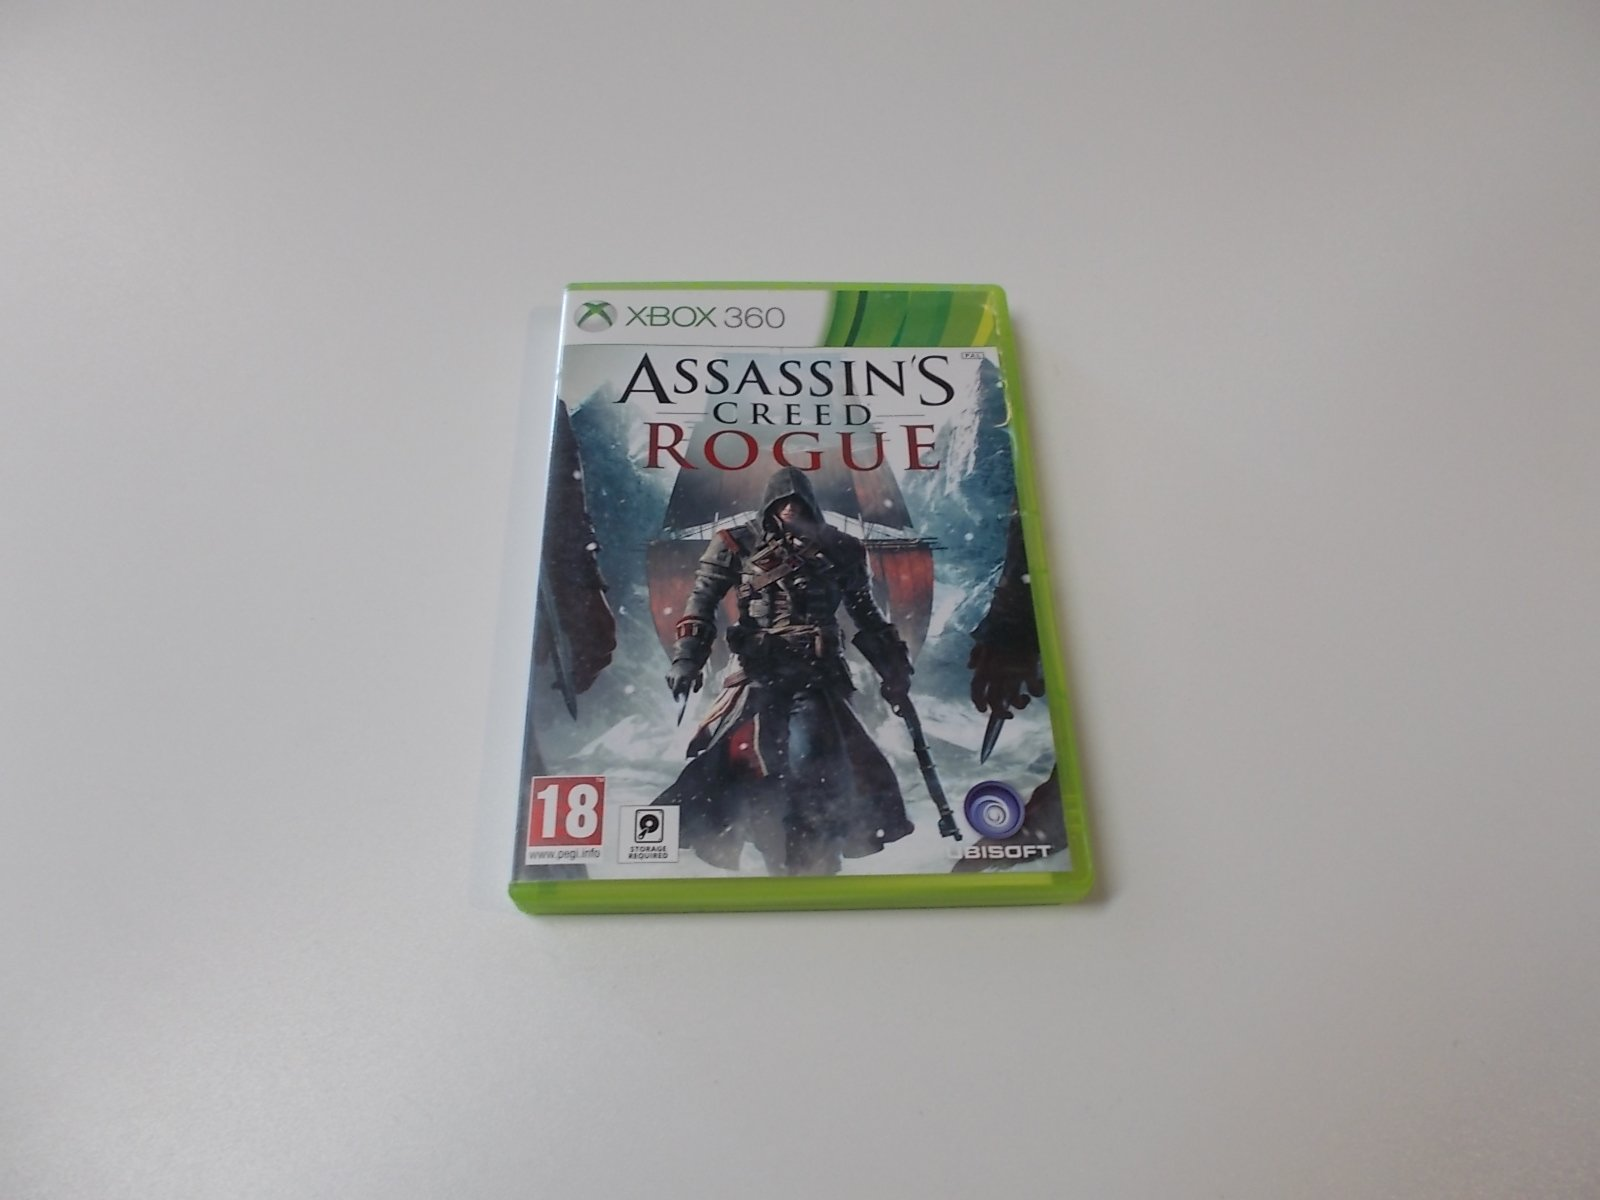 Assassins Creed Rogue - GRA Xbox 360 - Opole 0435